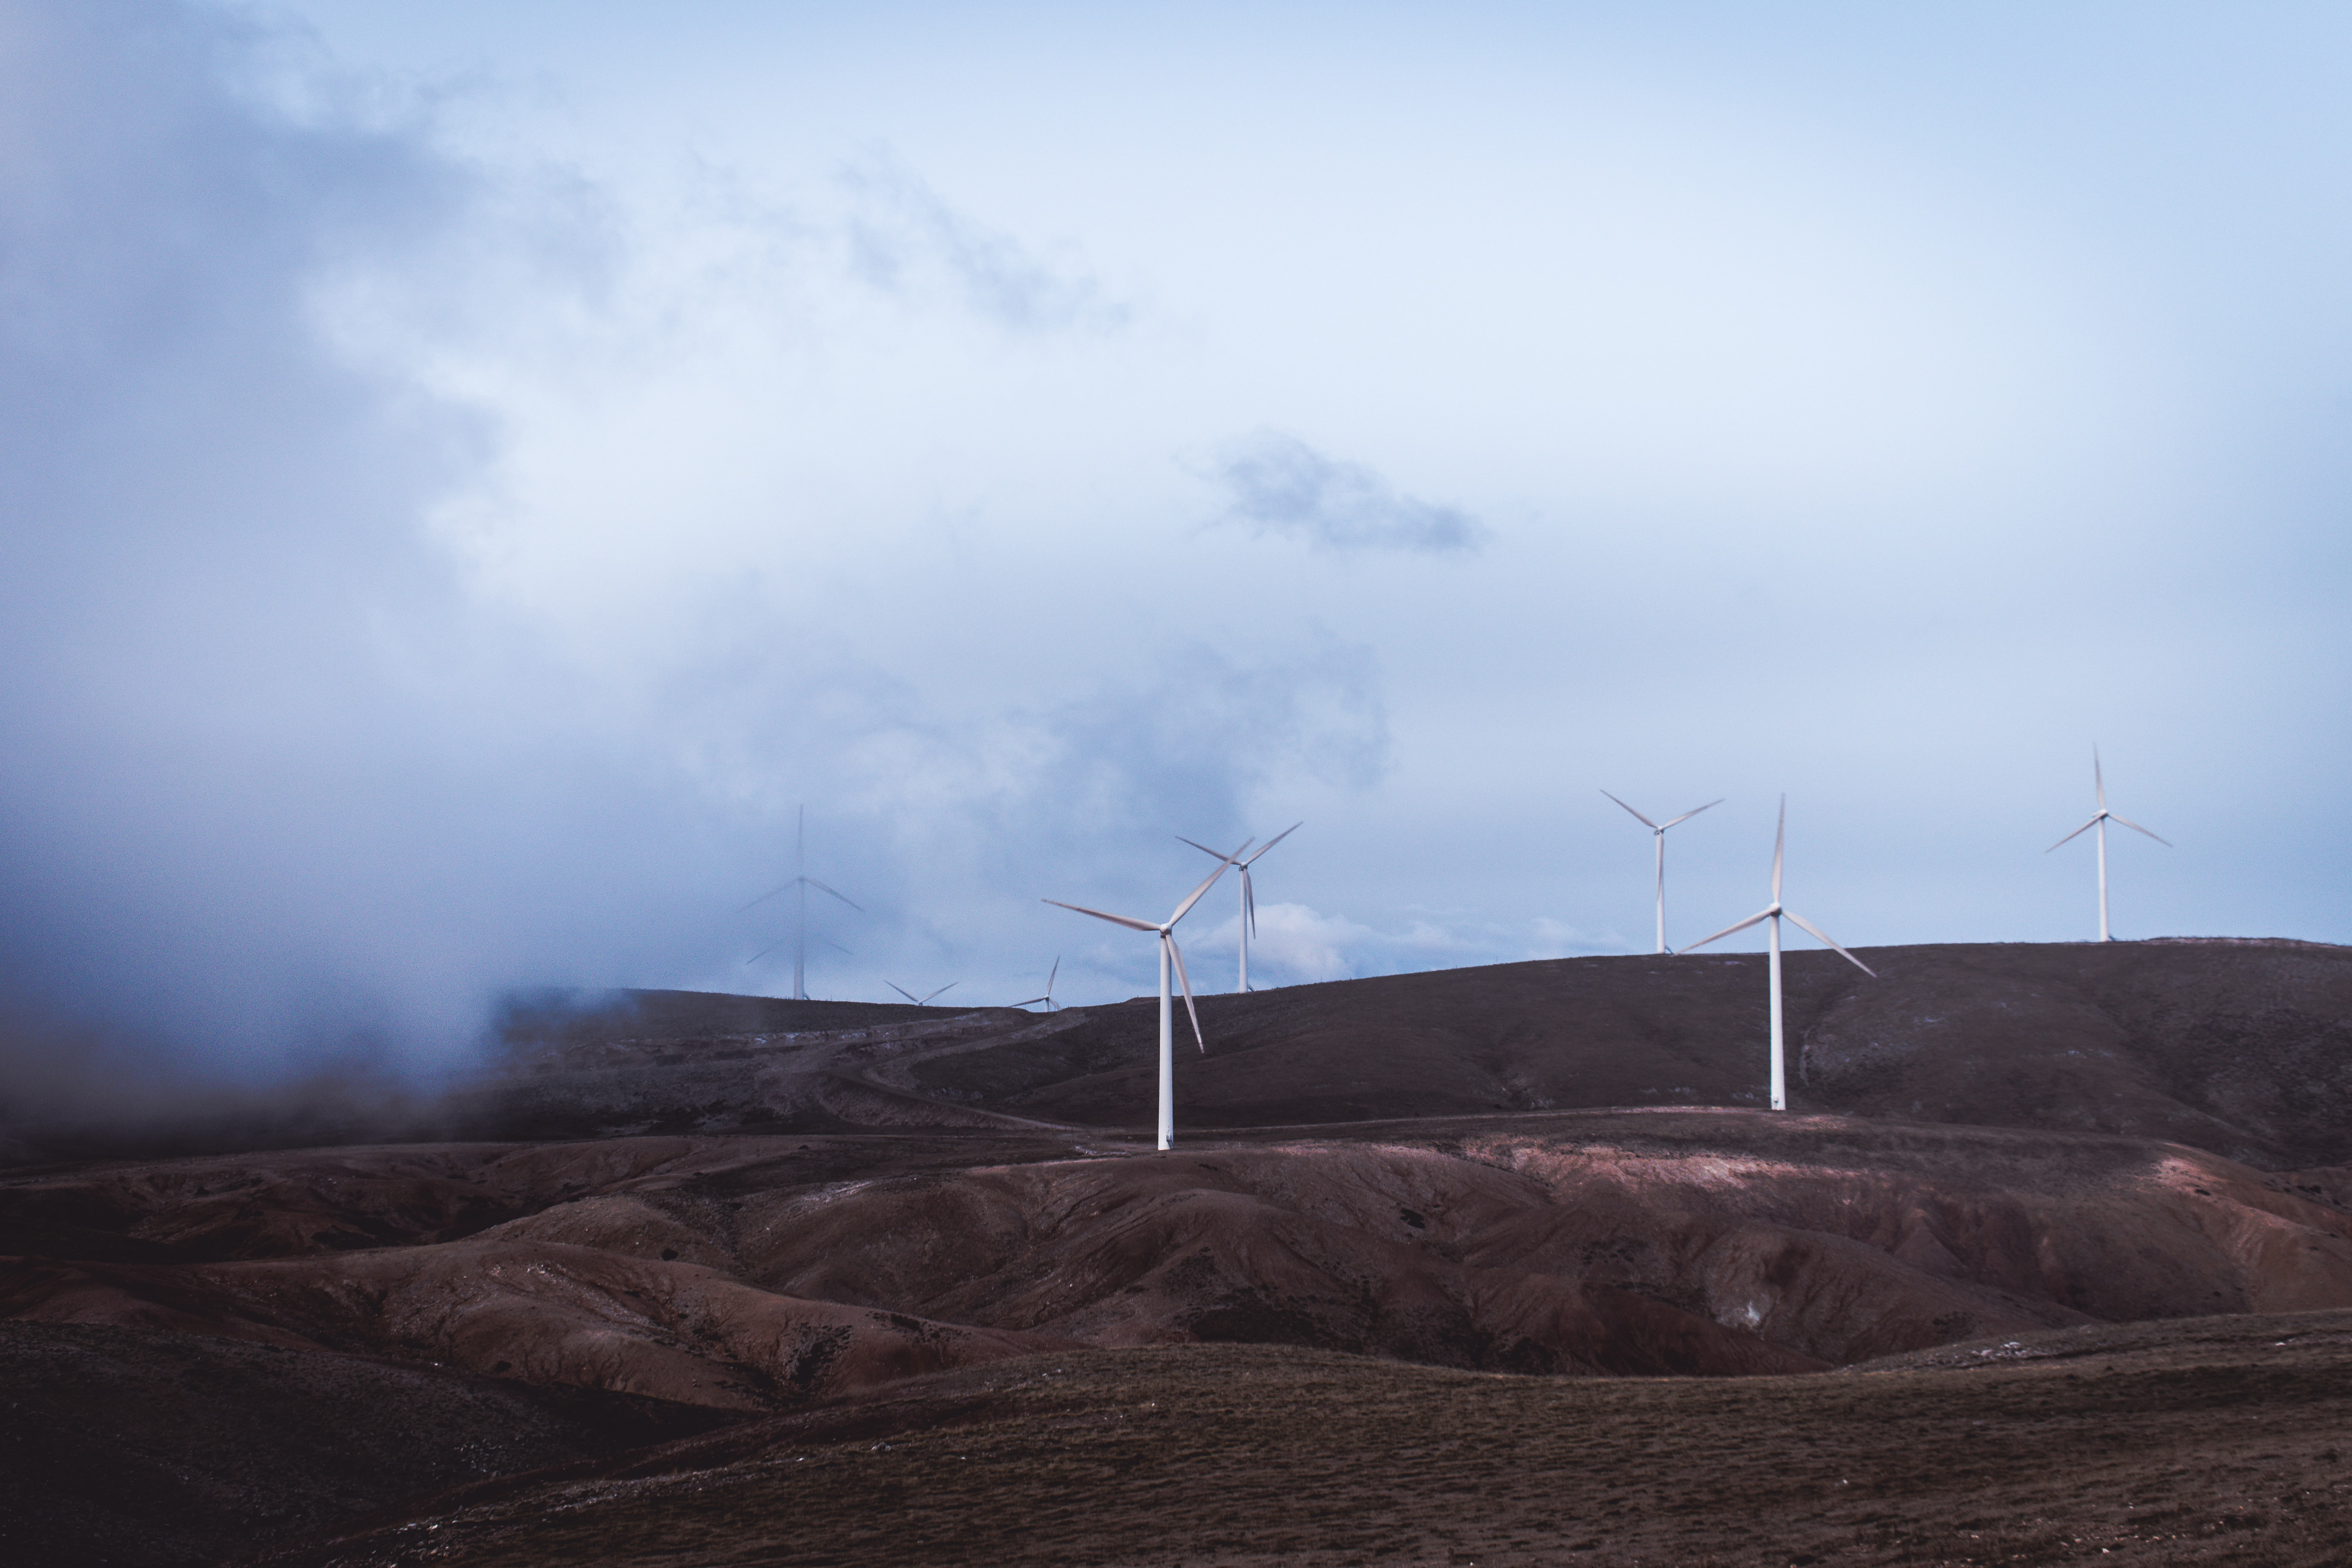 photo of windmills during cloudy daytime